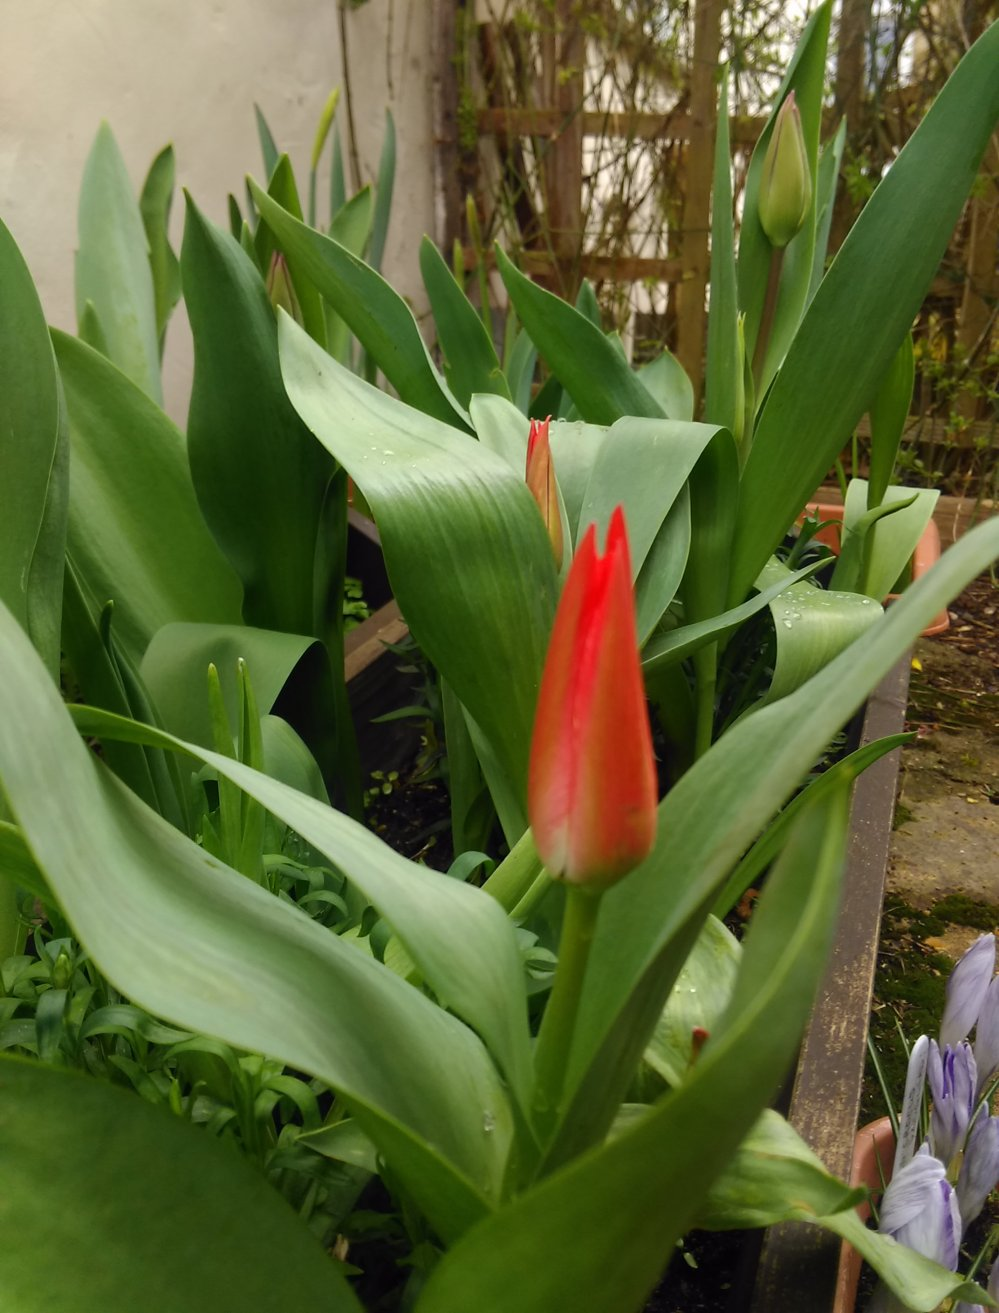 Red Tulips on bud